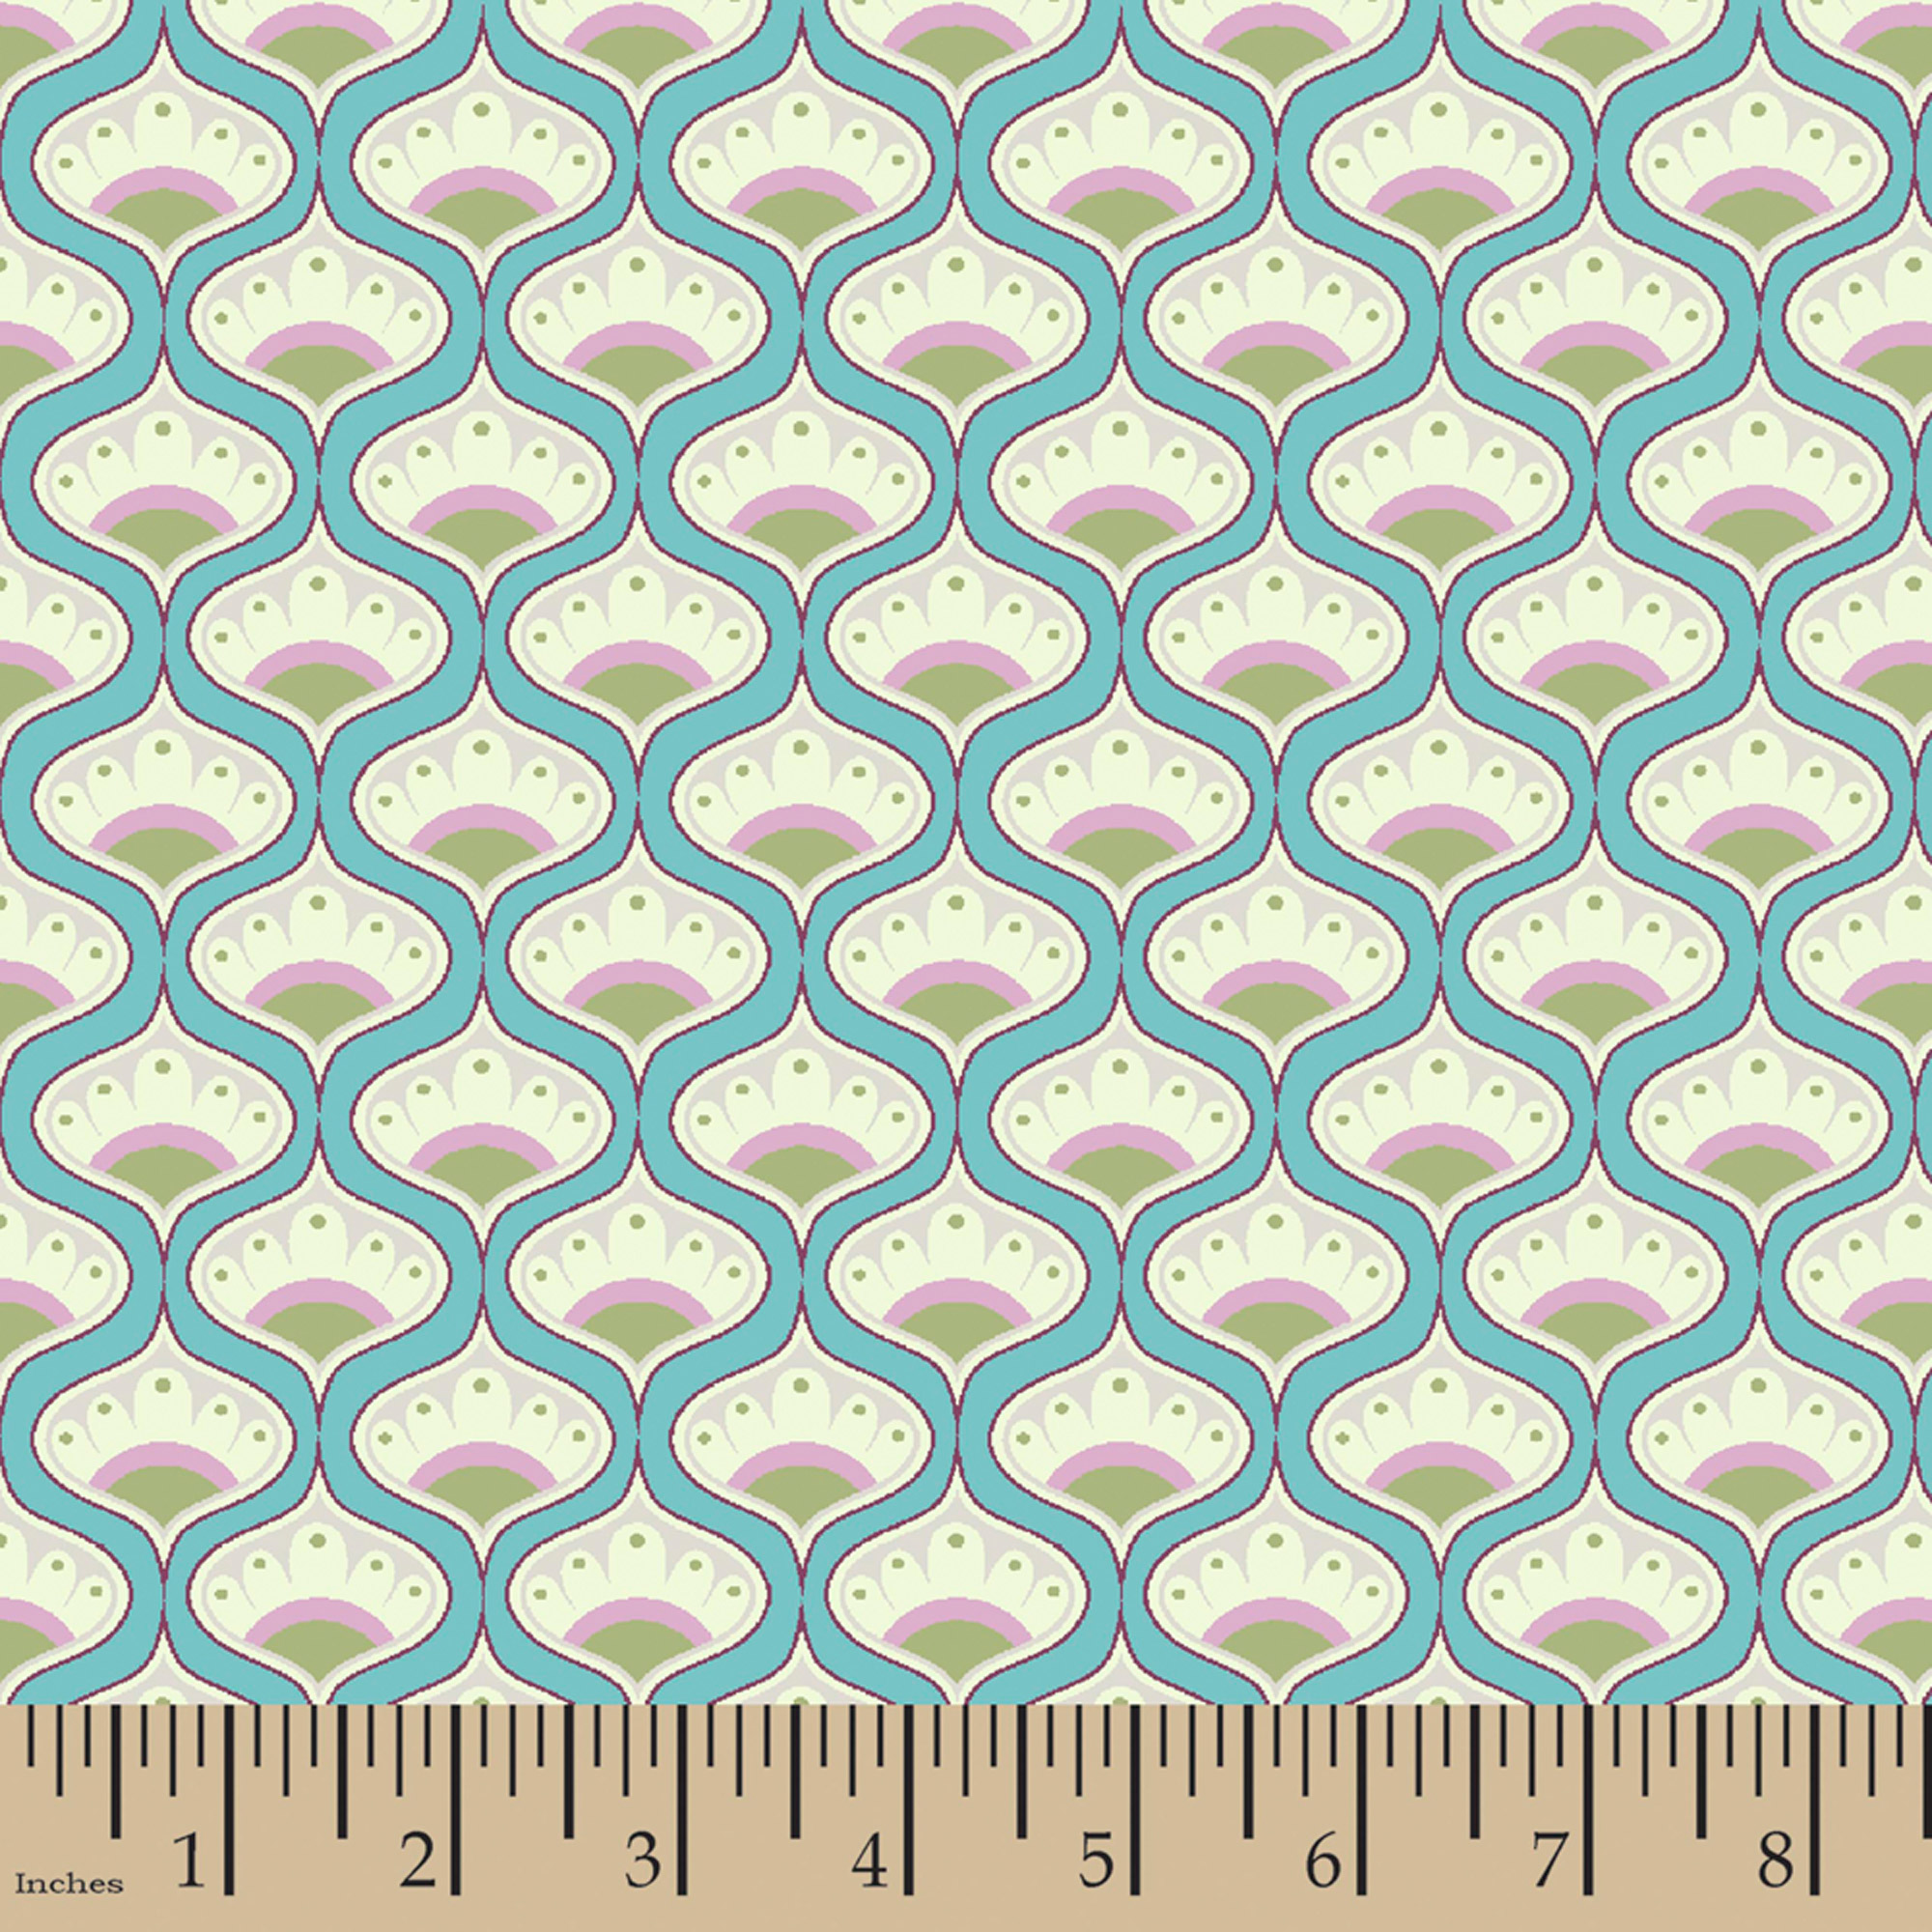 "Rosemary Fan Medallion, Cotton, Aqua, 44/45"" Wide, Fabric By The Yard"